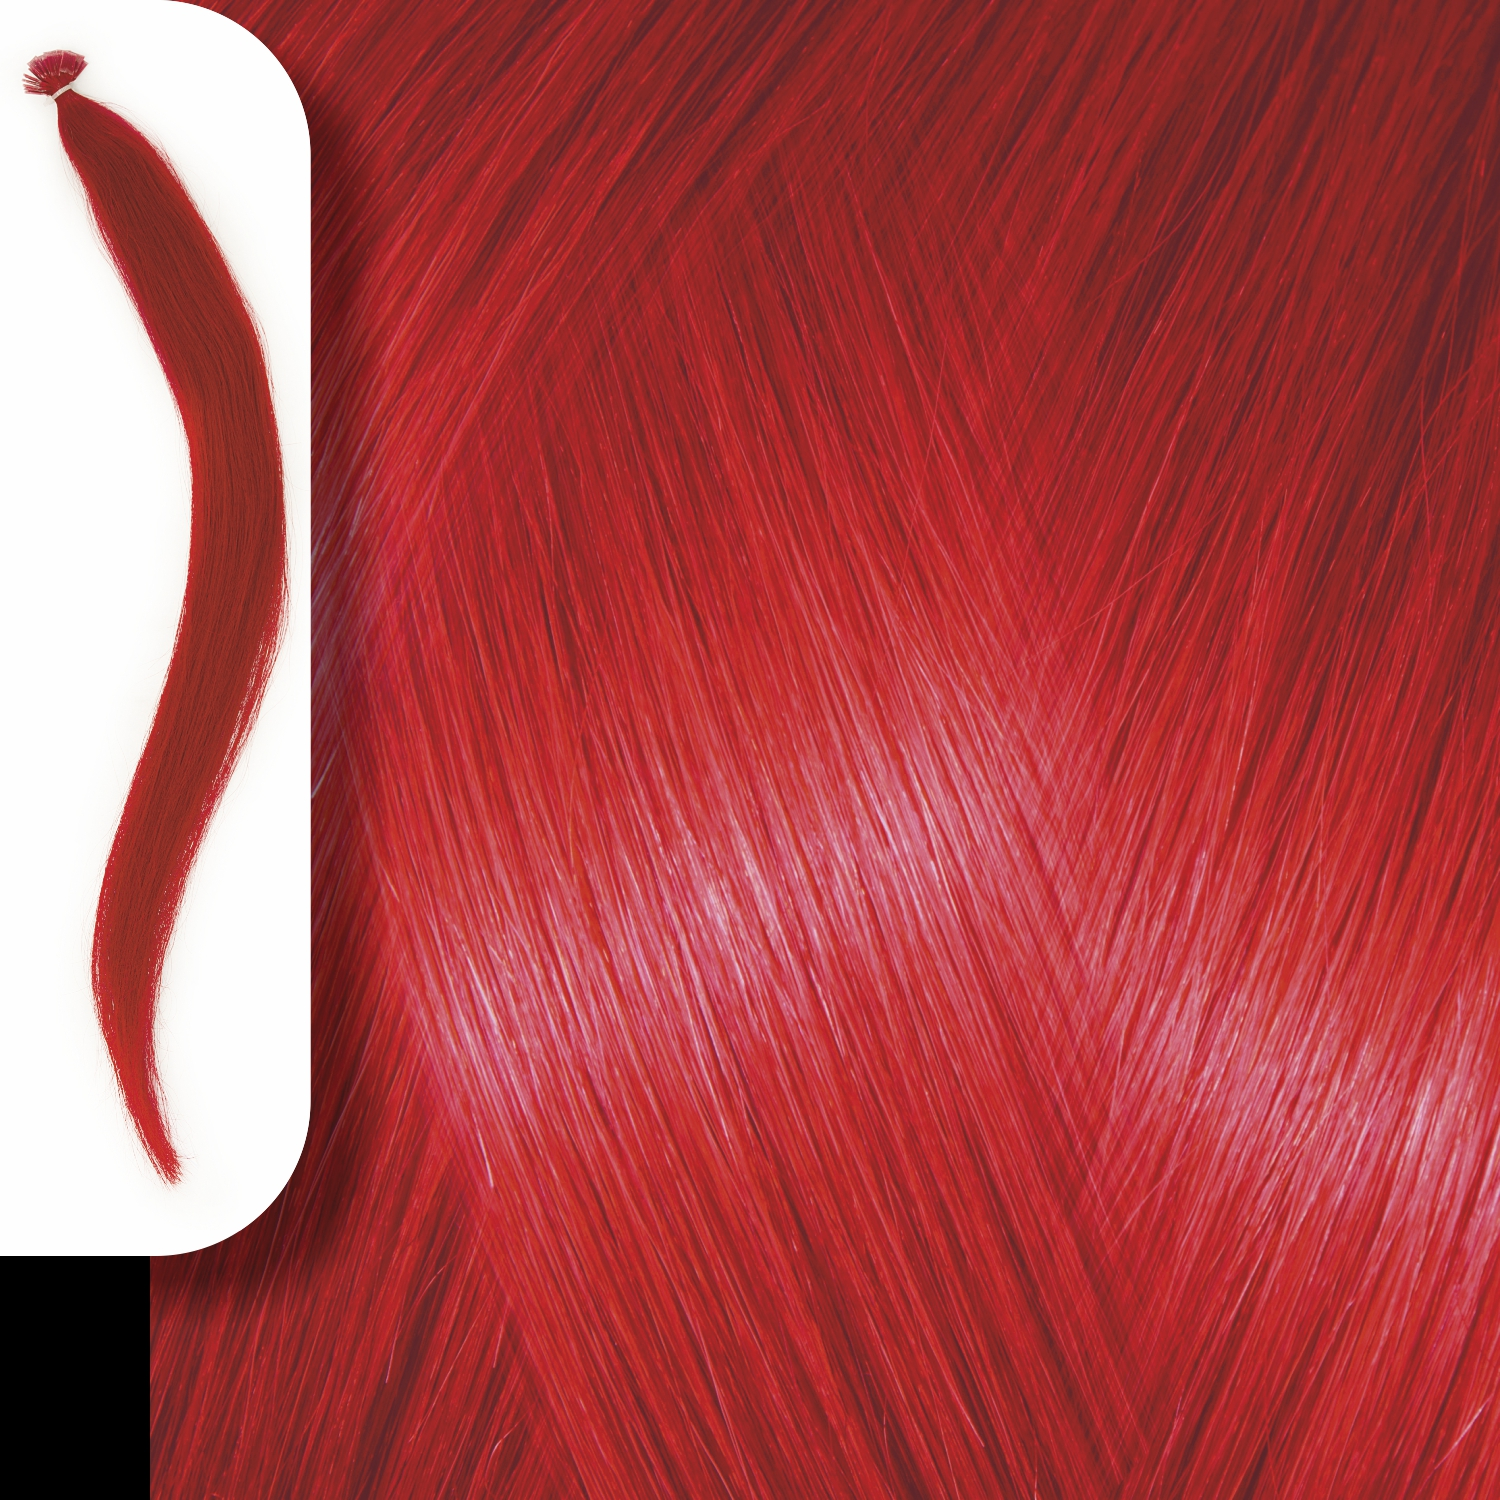 KERATIN HUMAN HAIR EXTENSIONS RED-50cm